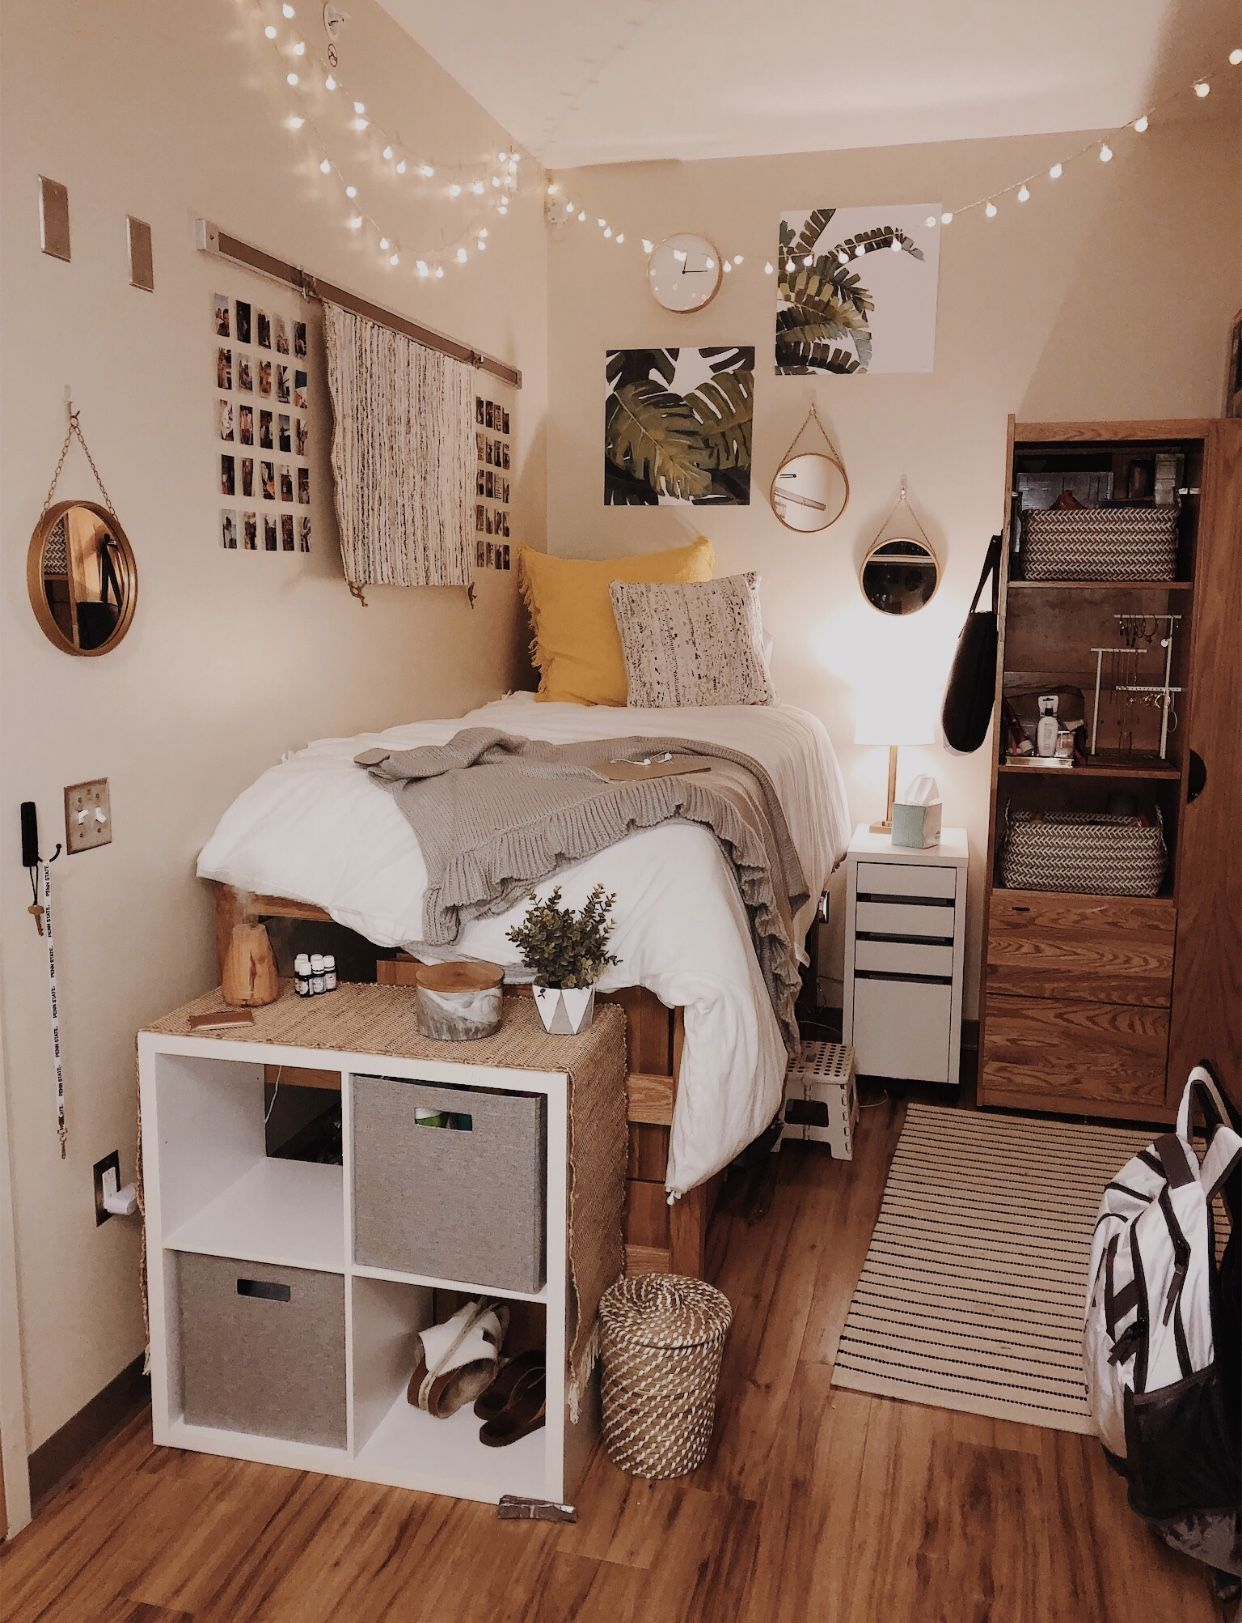 19 Recommended Small Bedroom Ideas 2020 Dorm Room Designs